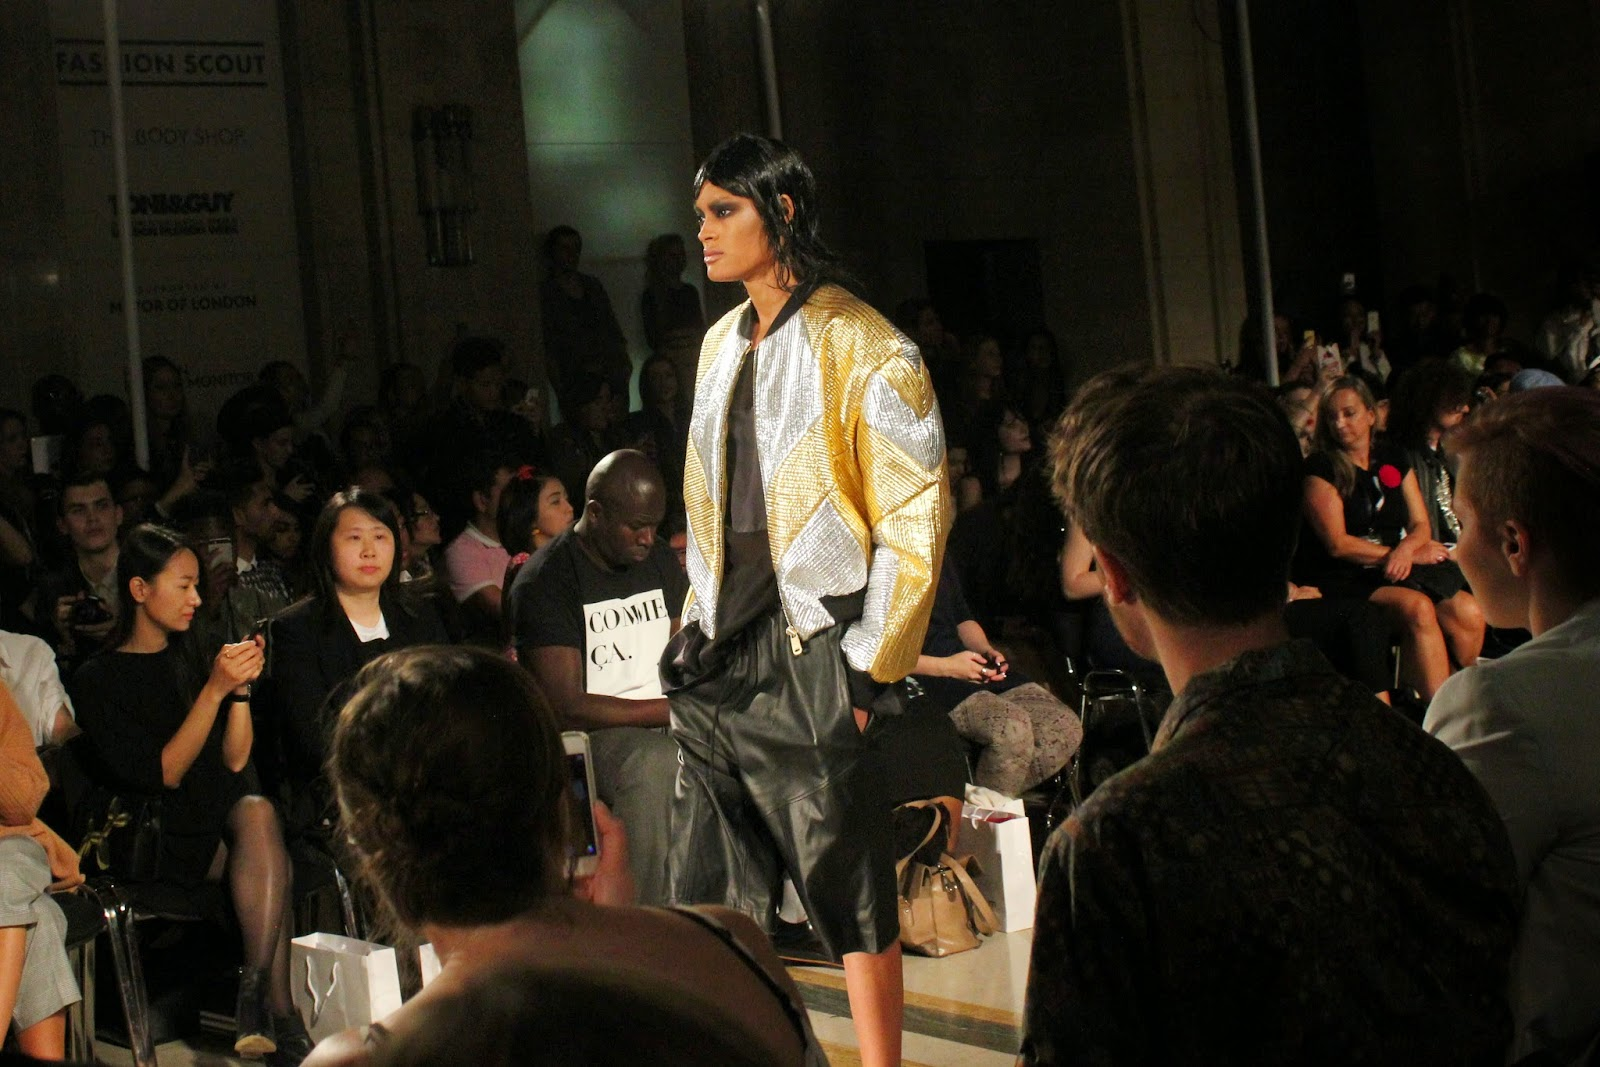 london-fashion-week-2014-lfw-spring-summer-2015-blogger-fashion-Dora-Abodi-catwalk-models-freemasons hall-fashion-scout-top-shorts-jacket-culottes